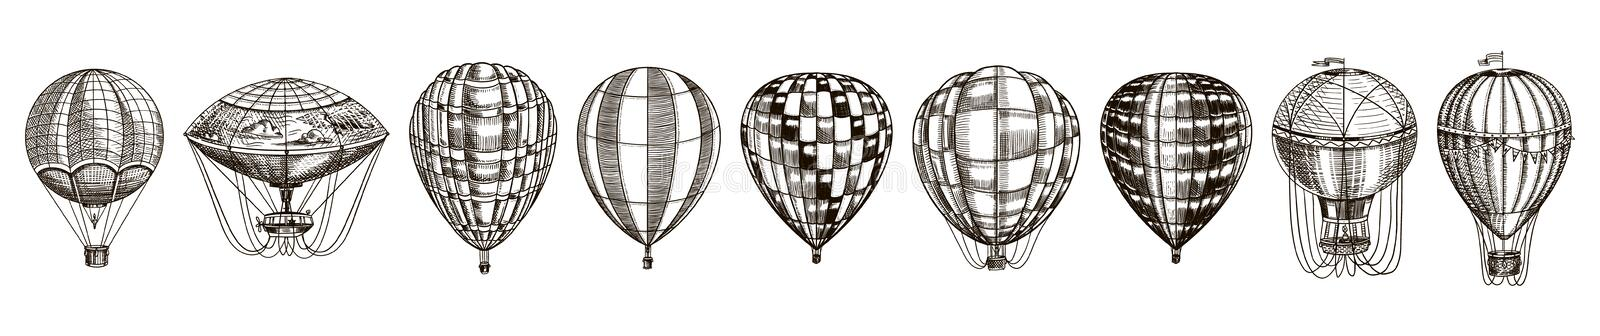 Vintage hot air balloons. Cute flying retro transport for summer holidays. Engraved Hand Drawn Sketch. vector illustration